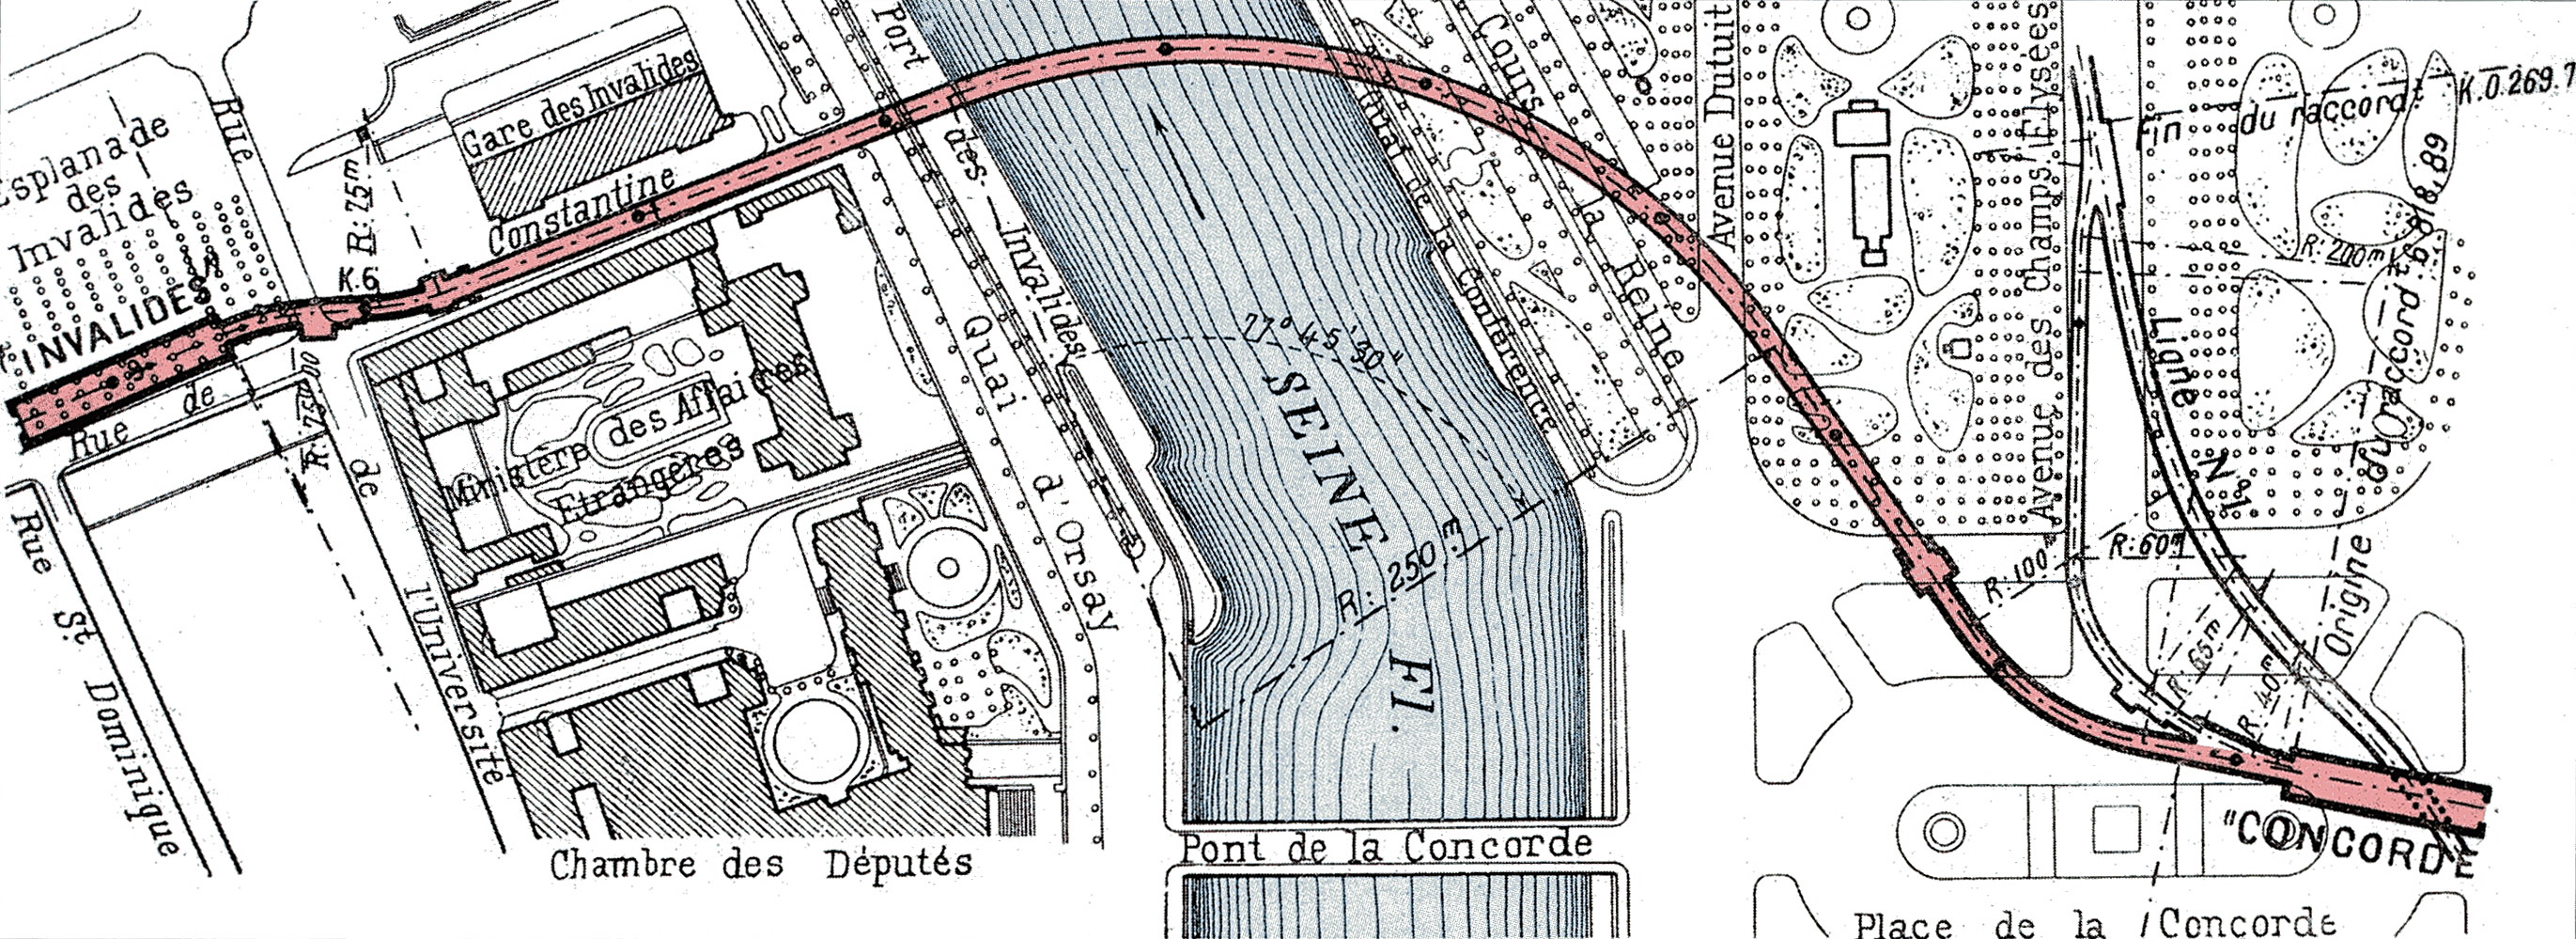 Plan du m tro de paris wikip dia subway application for Plans de bricolage en ligne